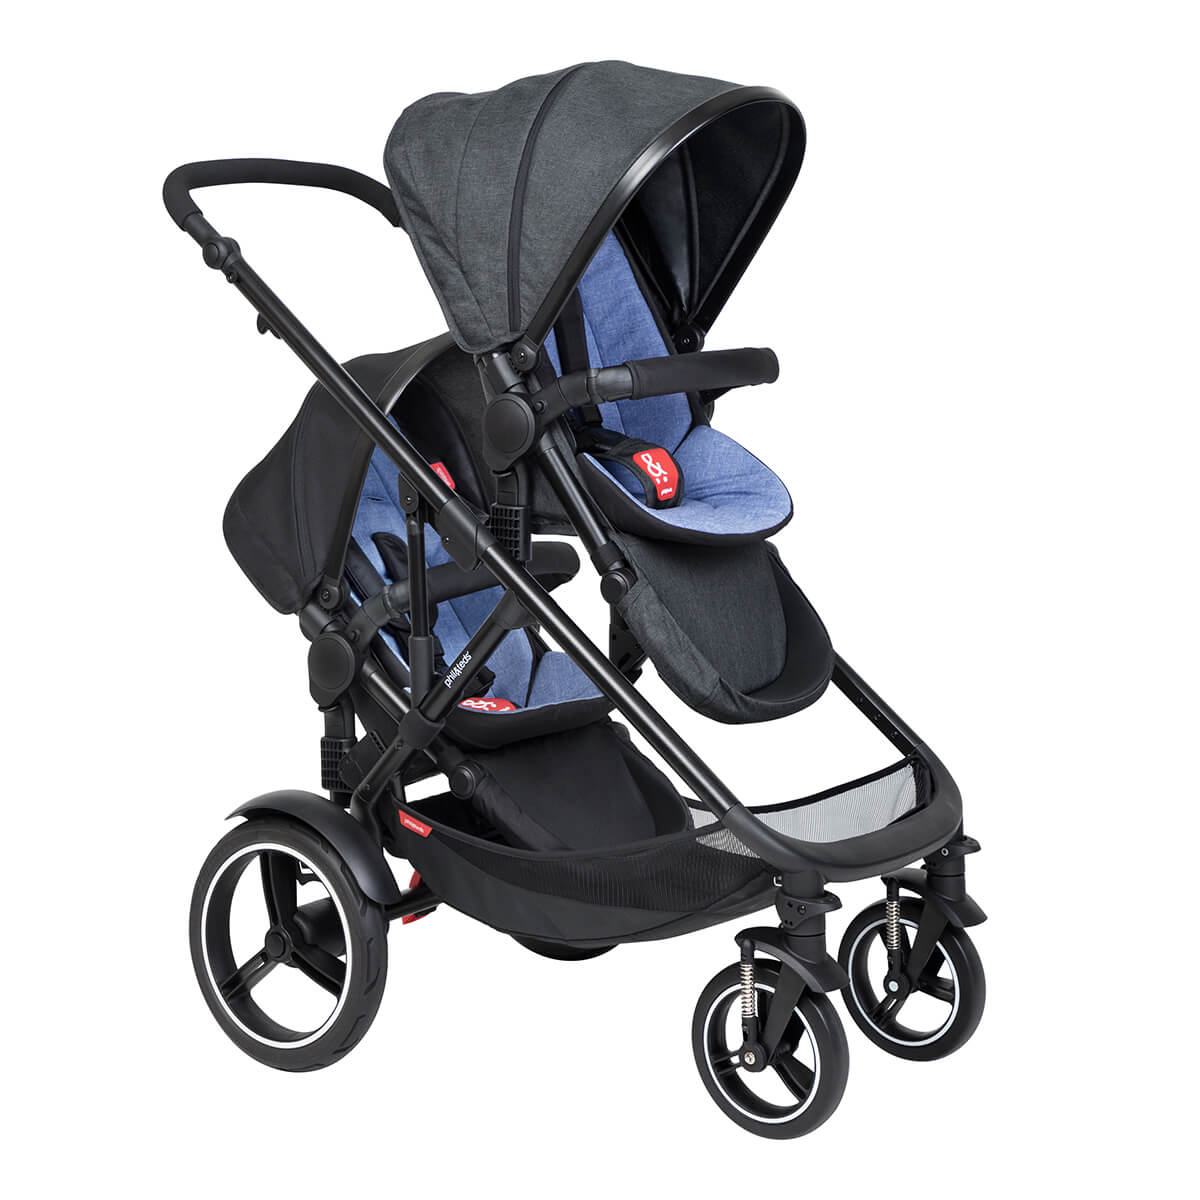 https://cdn.accentuate.io/4390319587424/19440099852472/philteds-voyager-inline-buggy-with-double-kit-in-rear-in-sky-blue-colour-v1633401038593.jpg?1200x1200